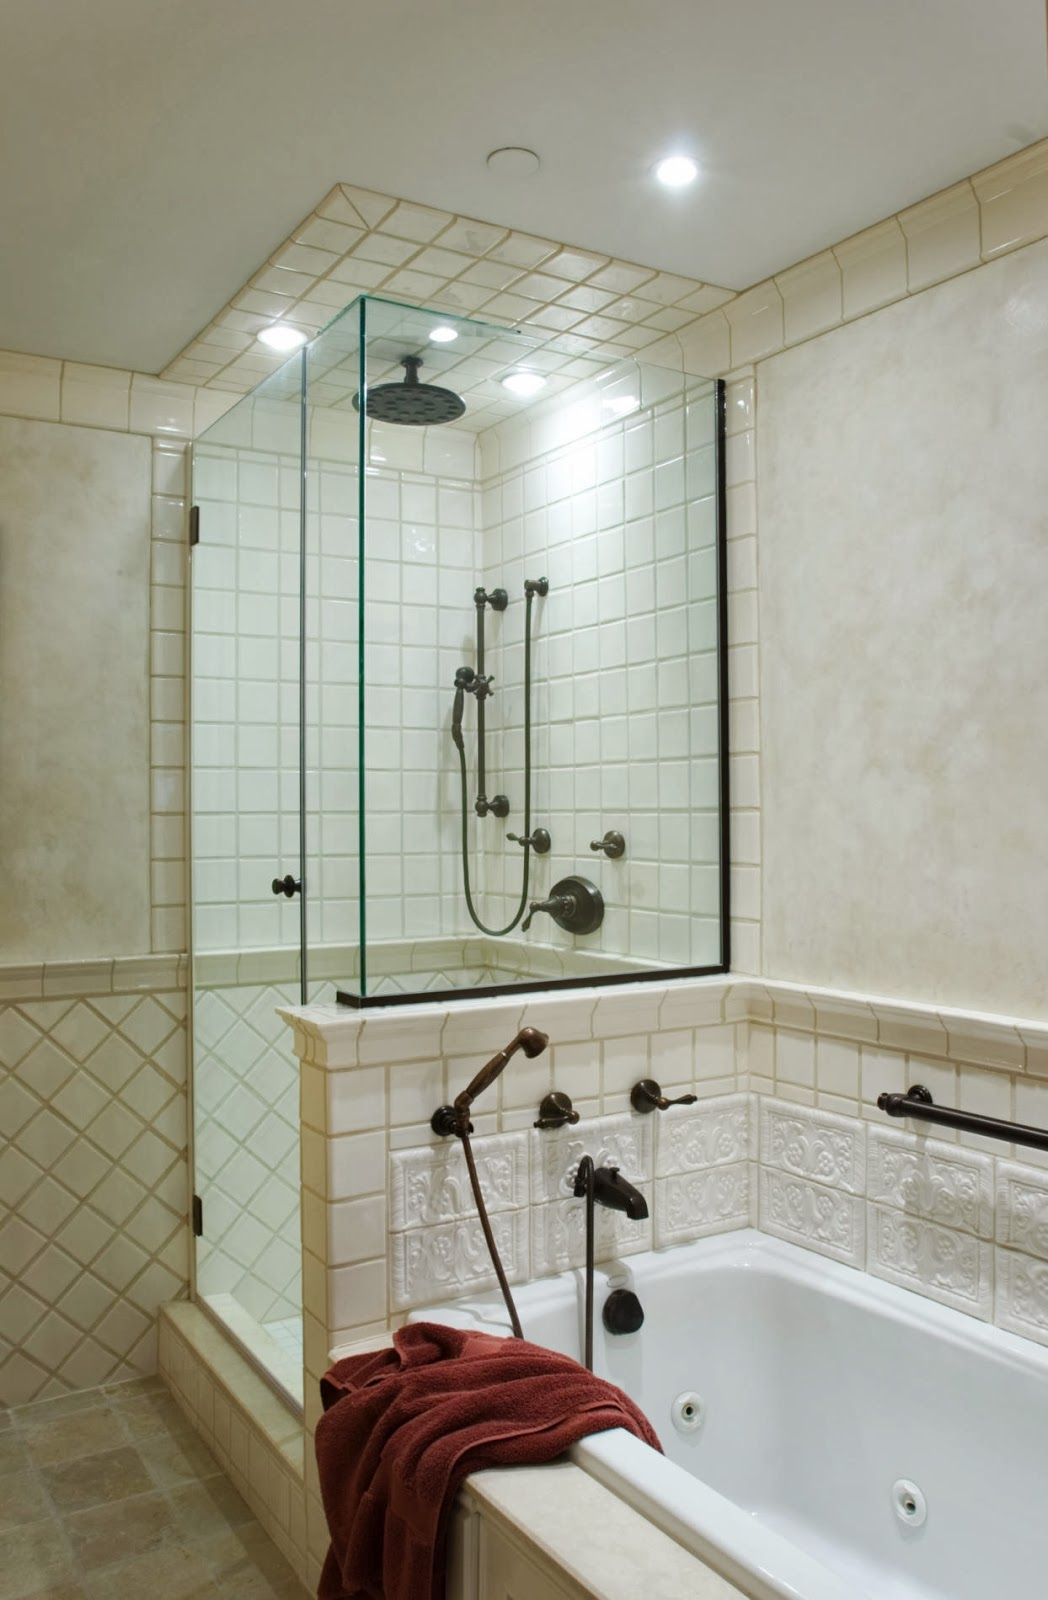 The Master Bathroom Is A Real Elegant In Its White Muted Color And